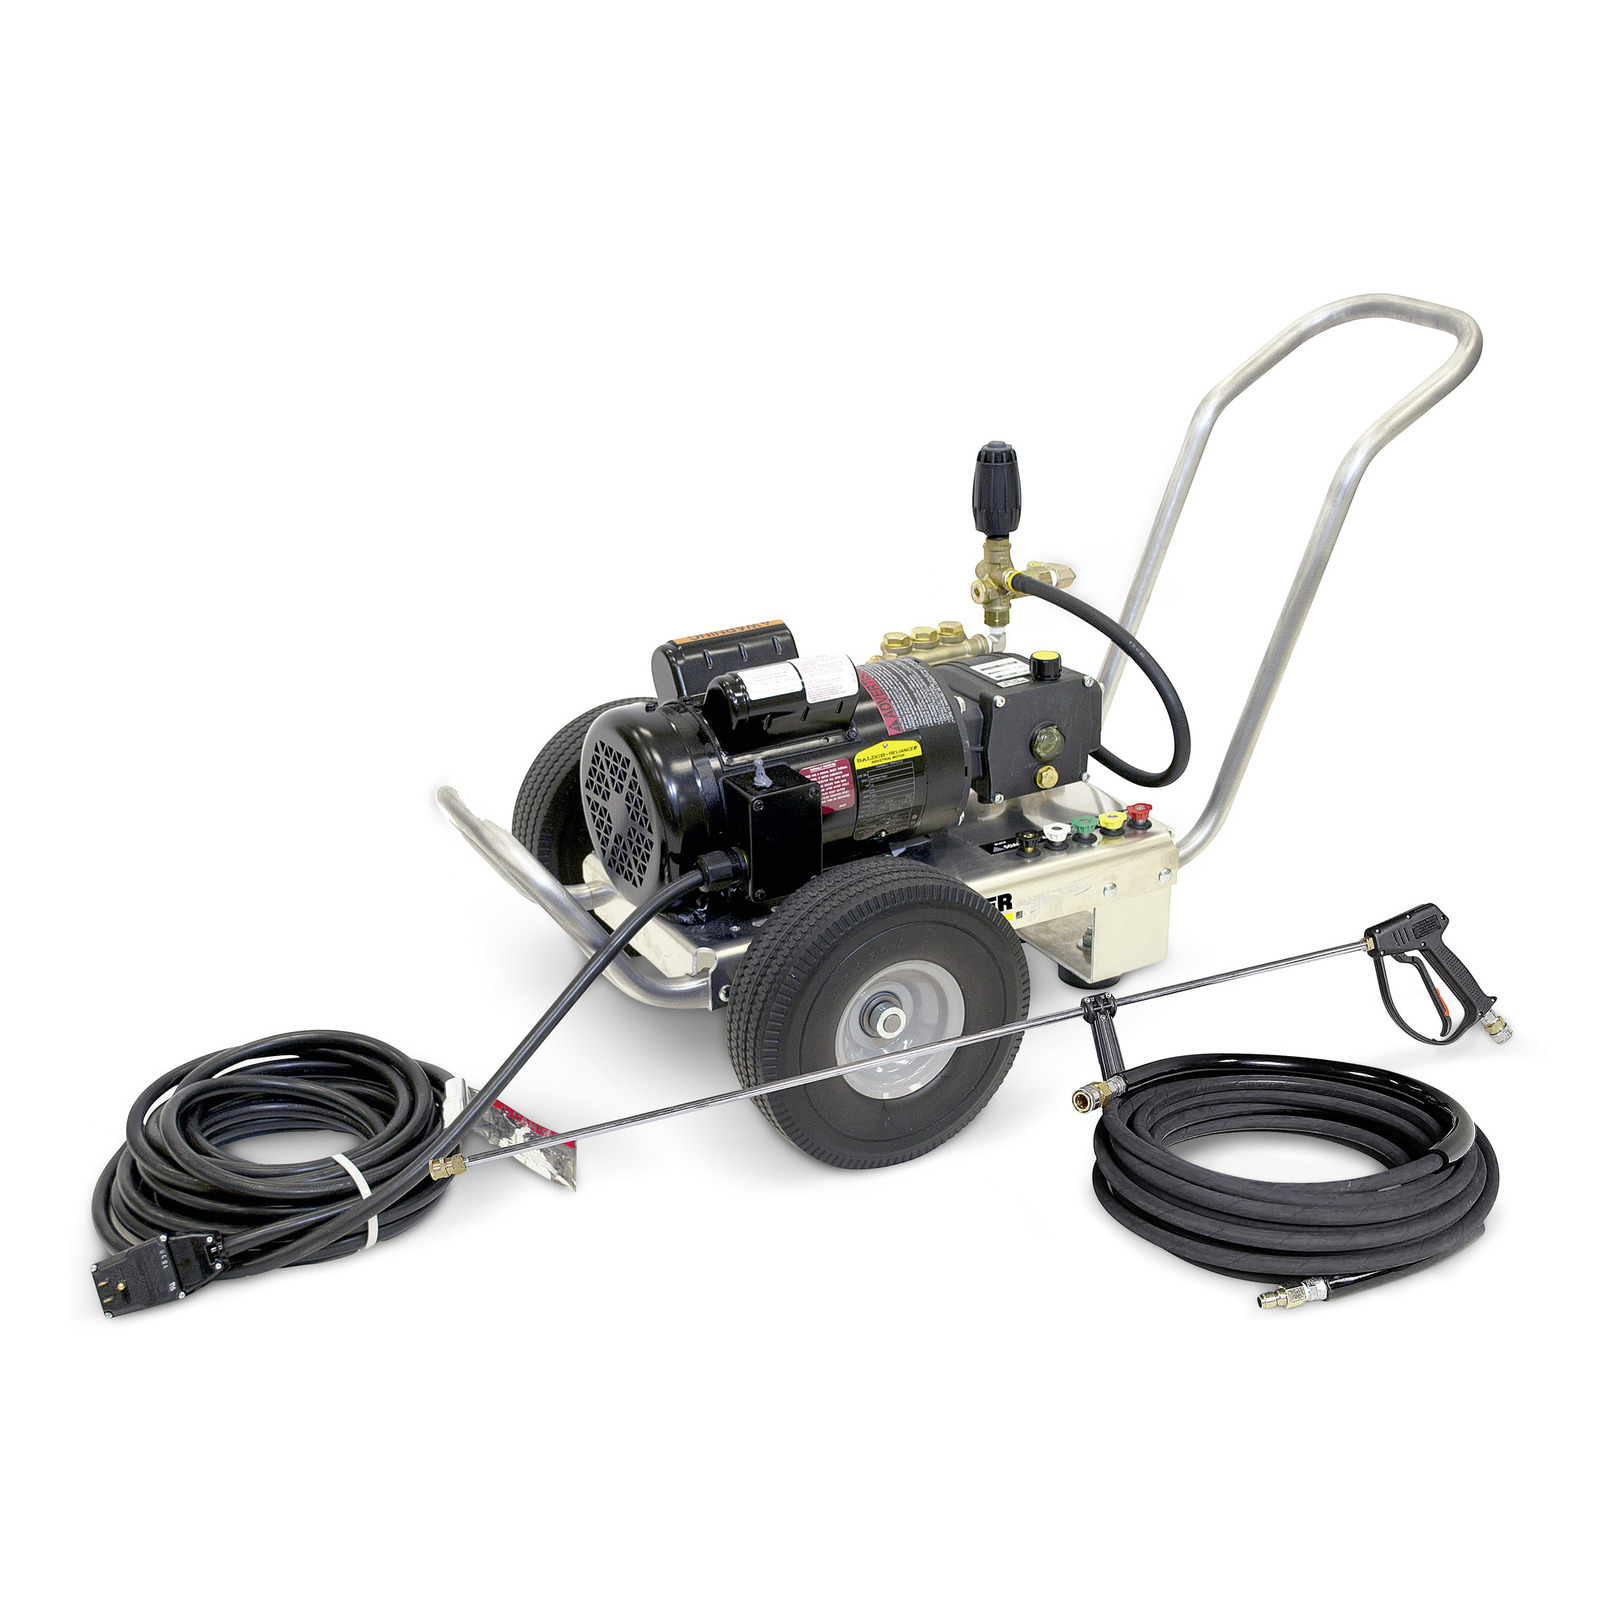 Hd Aluminum Series Cold Water Electric Powered Pressure